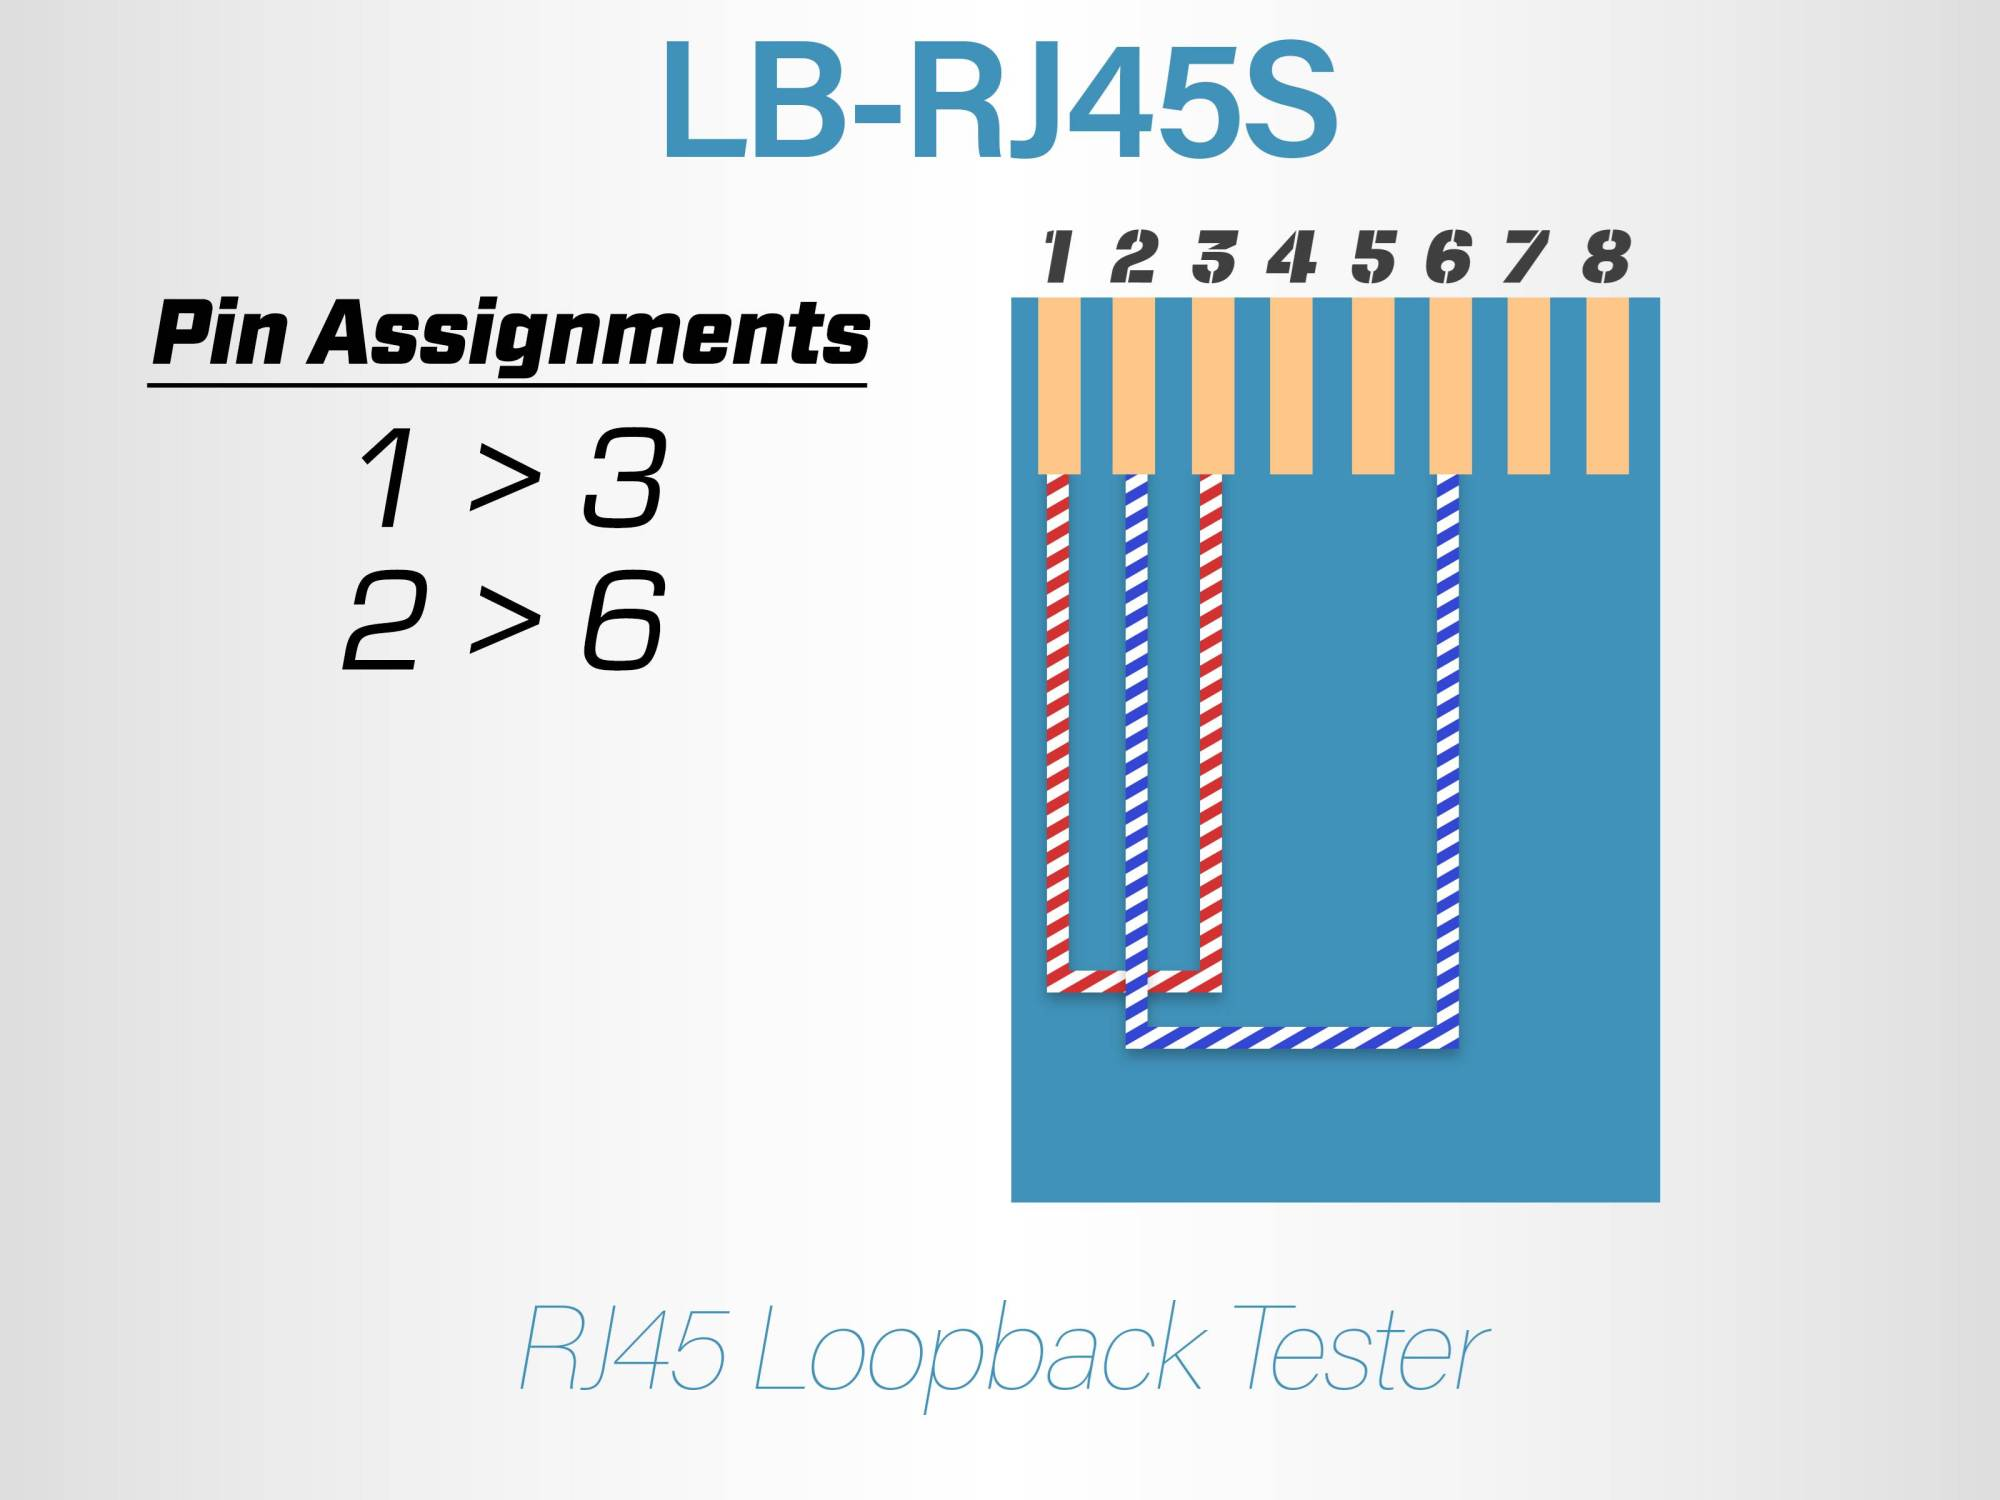 hight resolution of  rj45 loopback tester computer cable store on ethernet crossover cable ethernet cable drawing